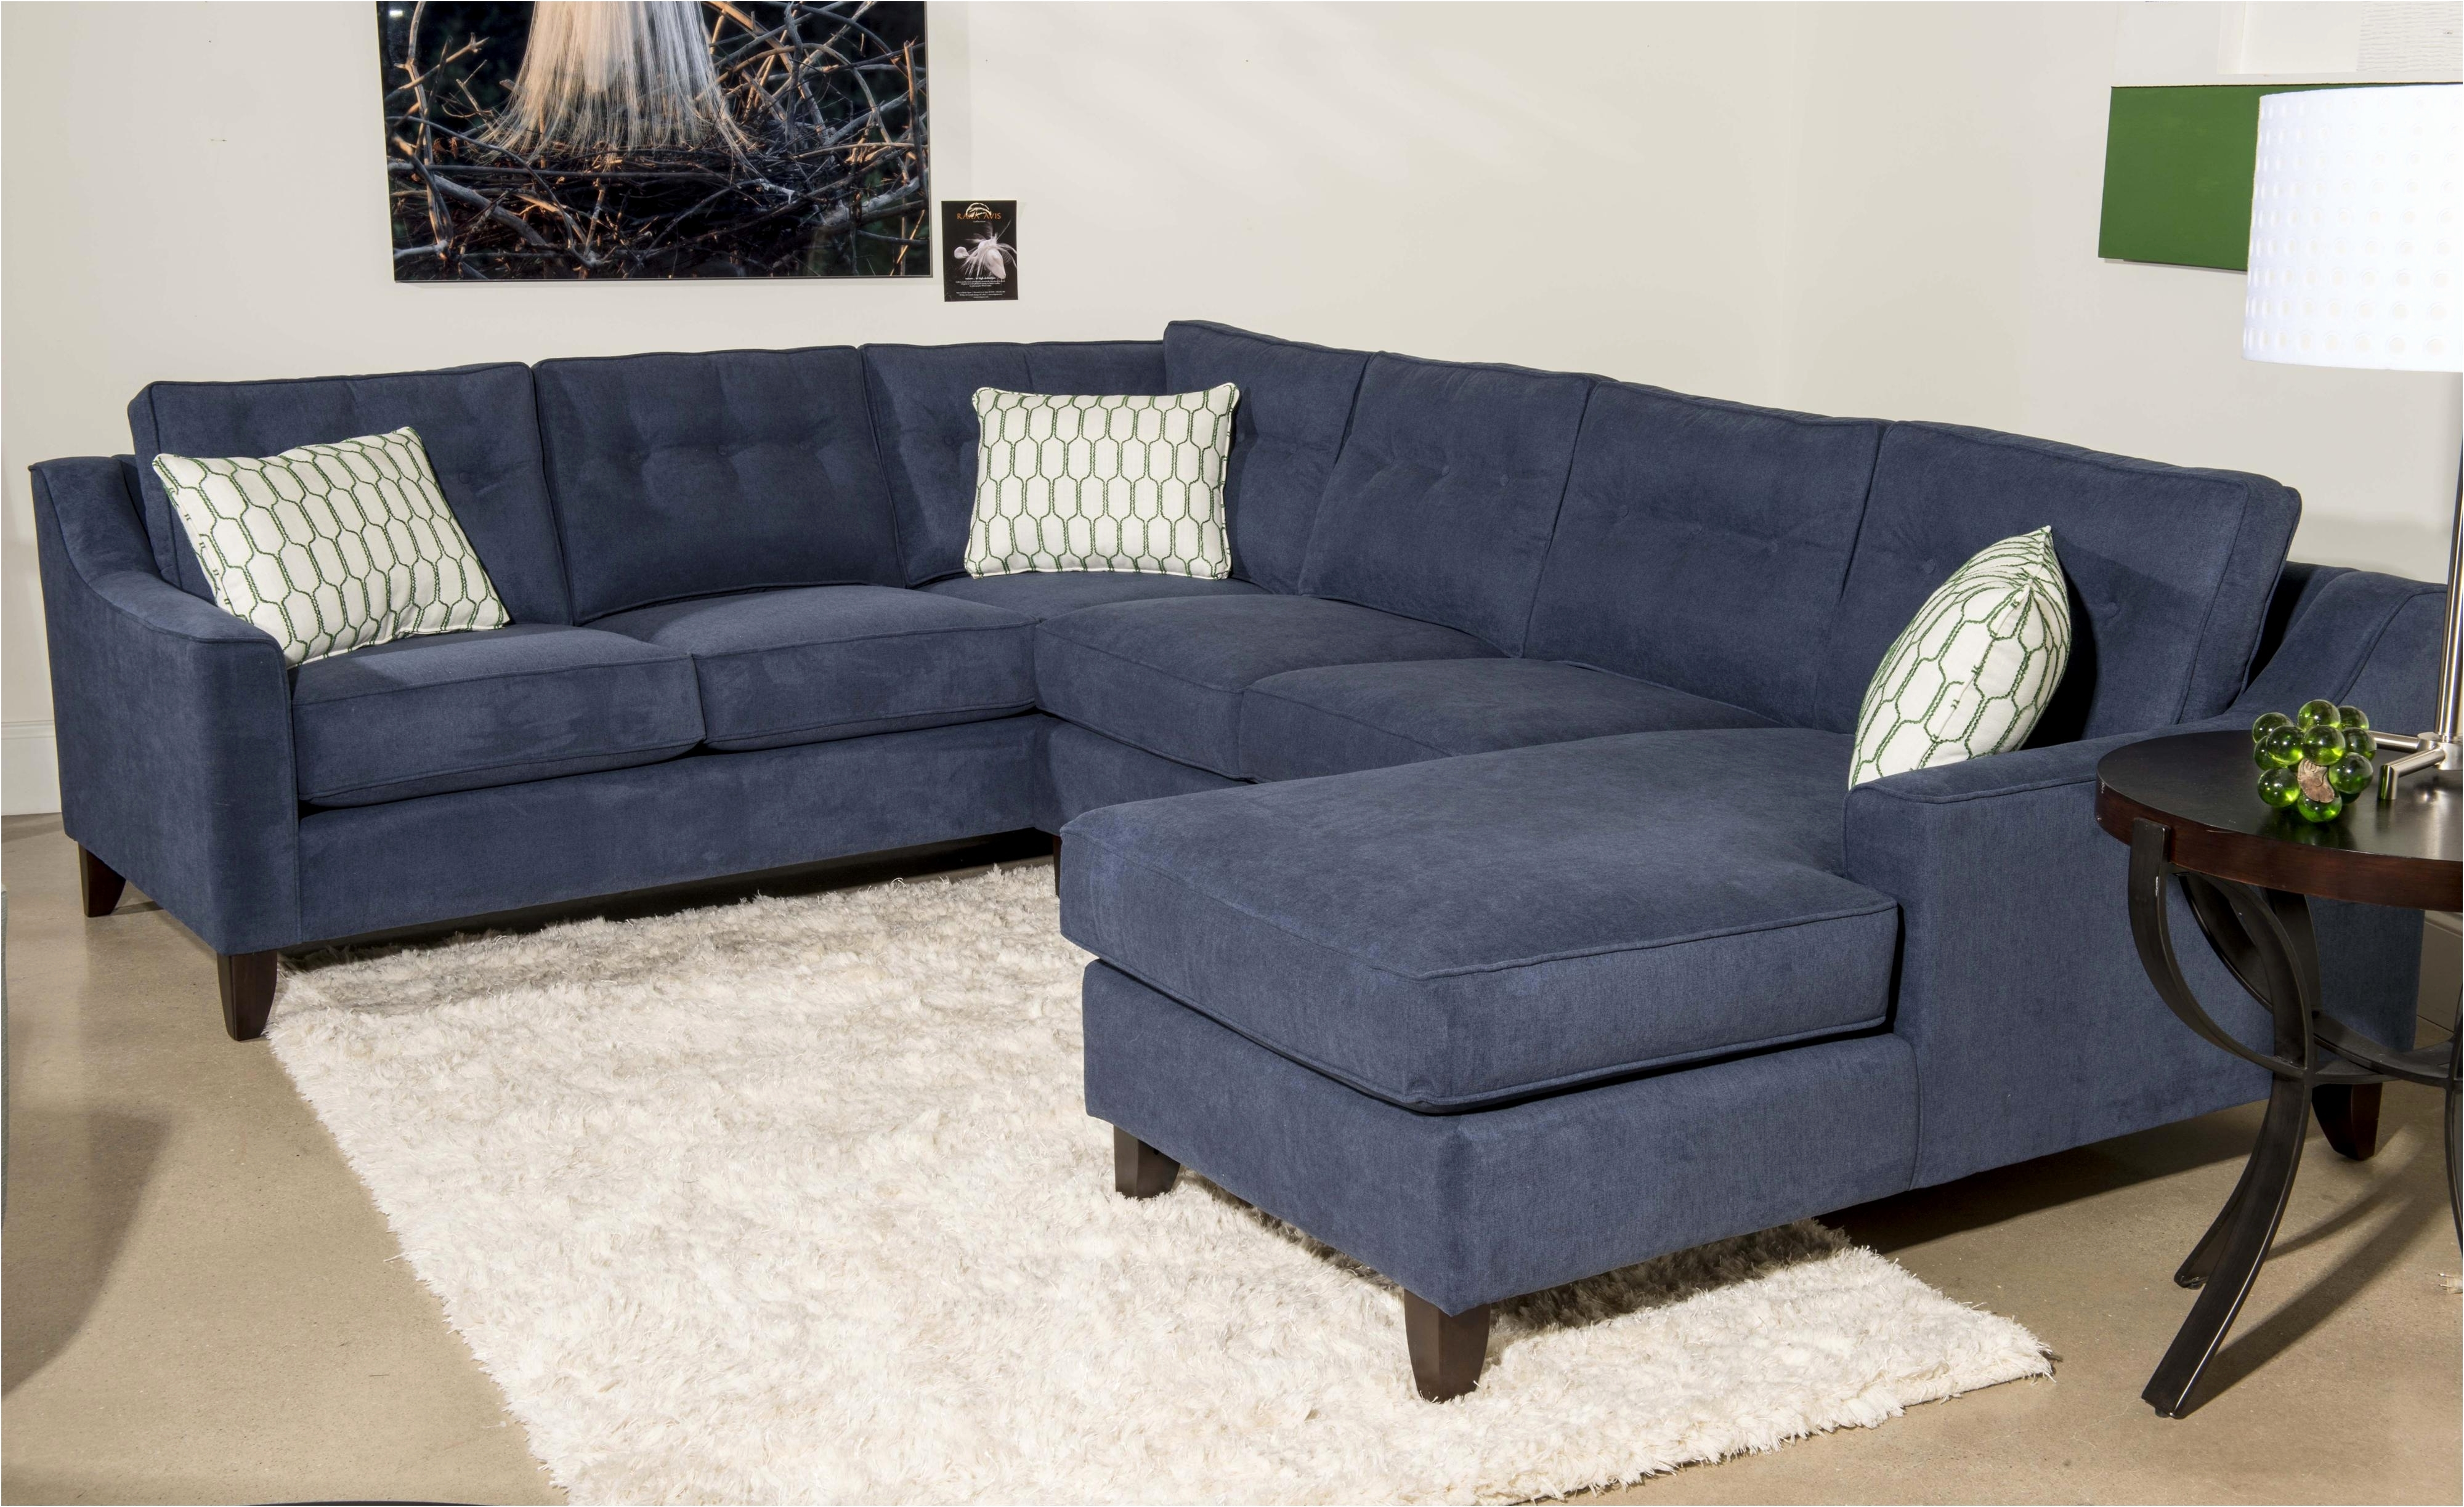 Blue Sectional Sofa Unique Light Leather Within Navy Plan 19 For Blue Sectional Sofas (Image 5 of 10)